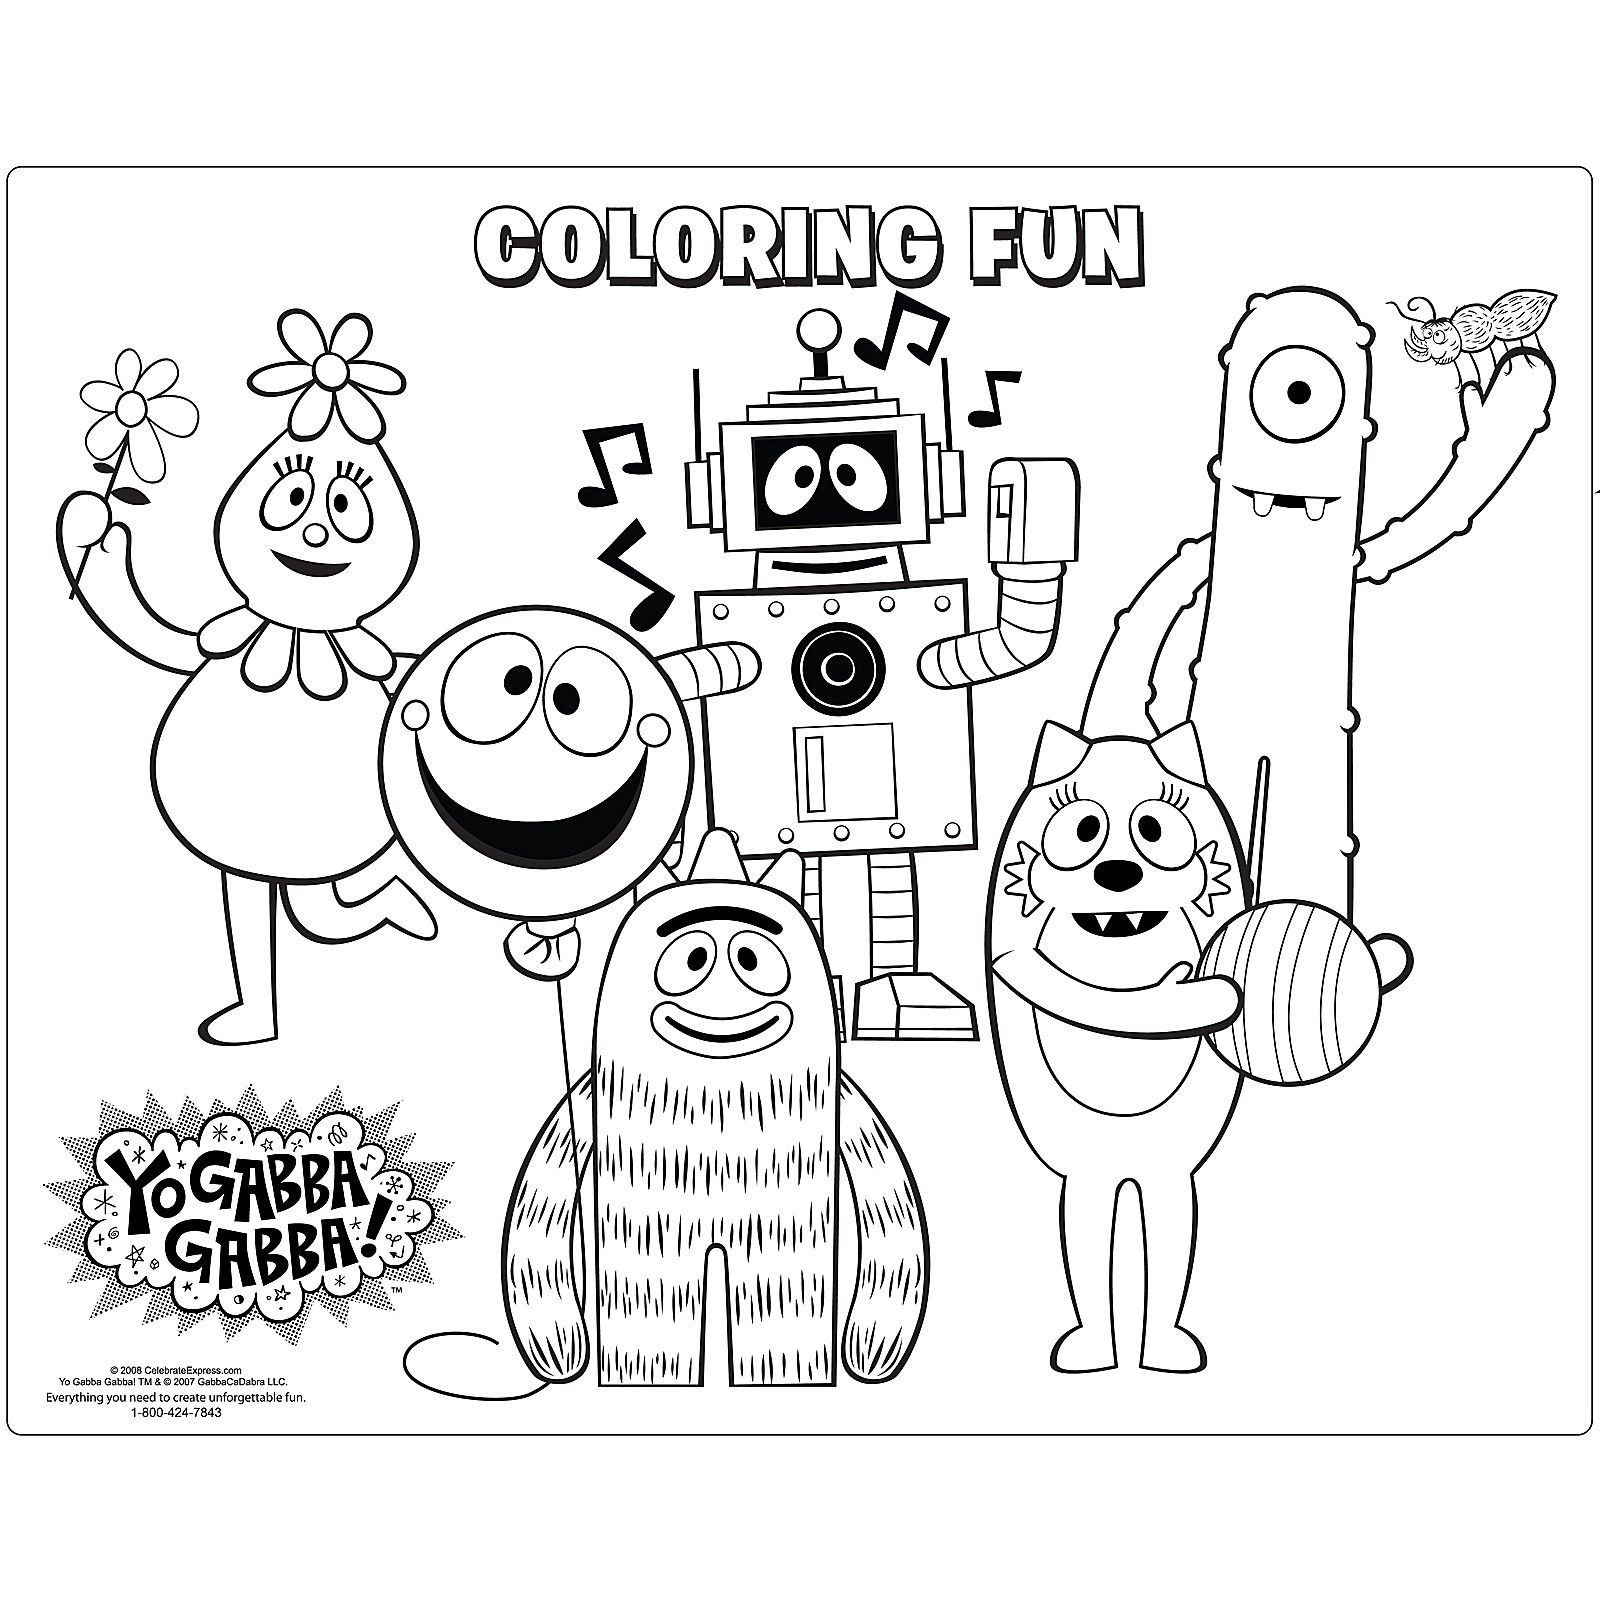 coloring pages in 2020 | Dance coloring pages, Gabba gabba ...